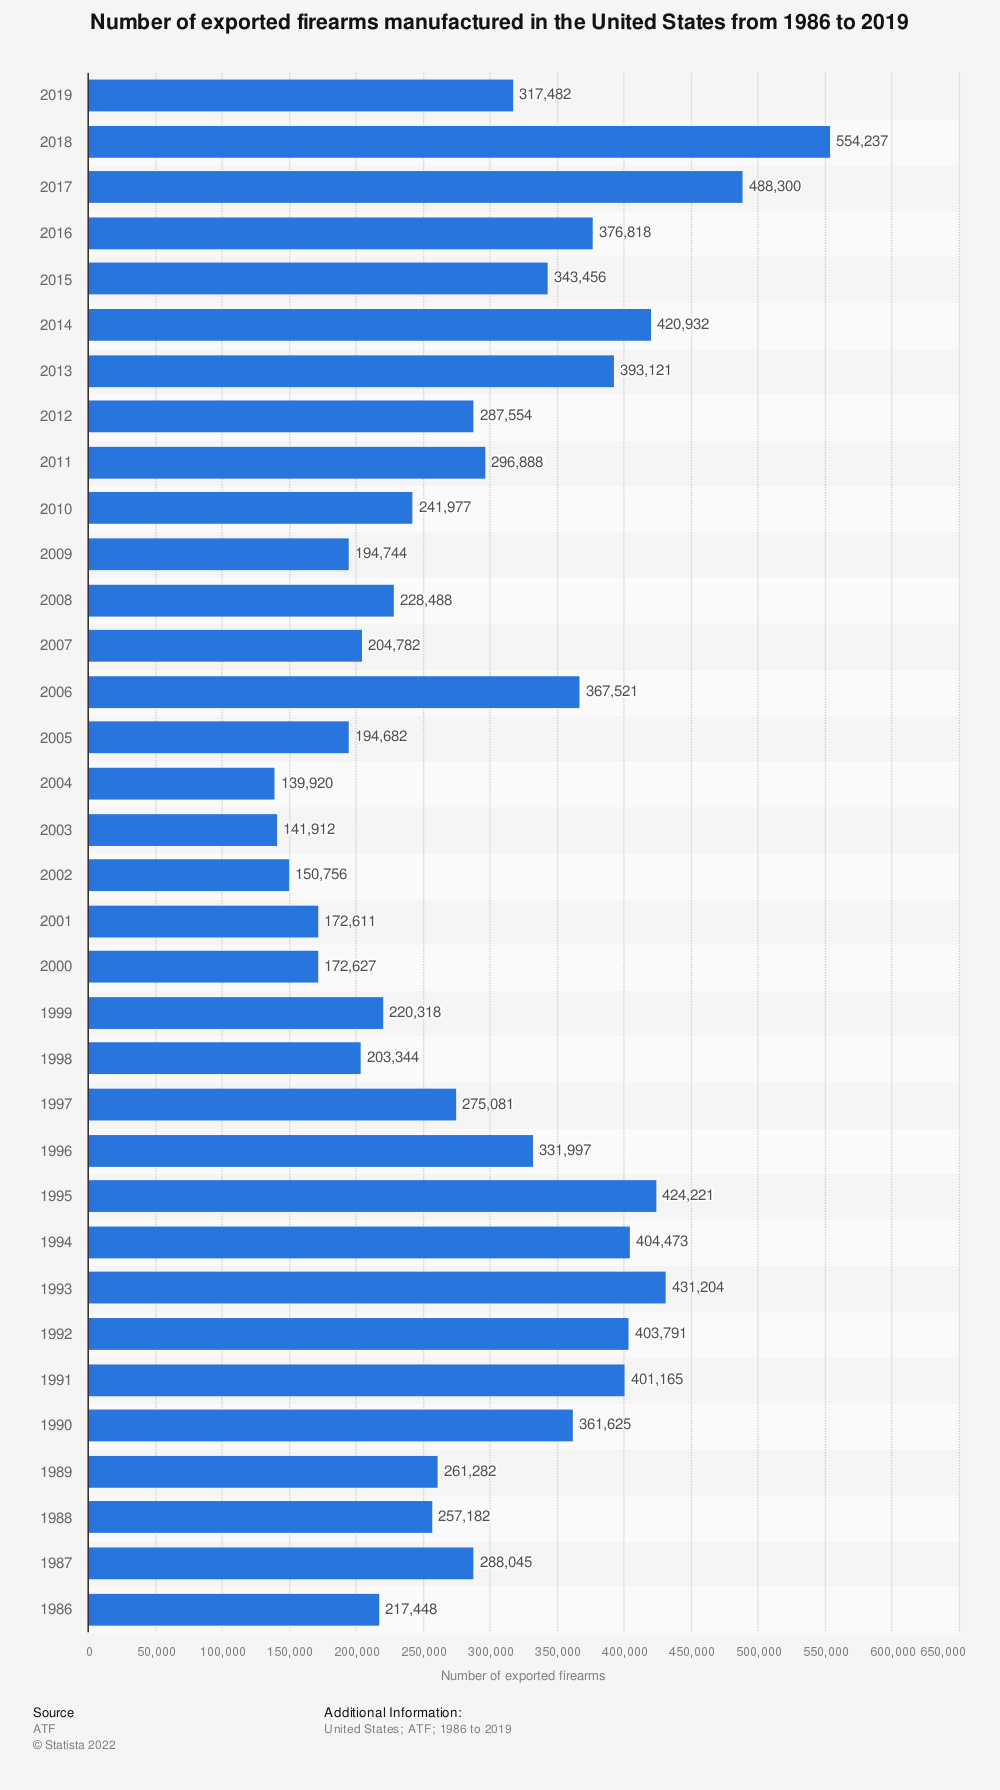 Statistic: Number of exported firearms manufactured in the U.S. from 1986 to 2016 | Statista